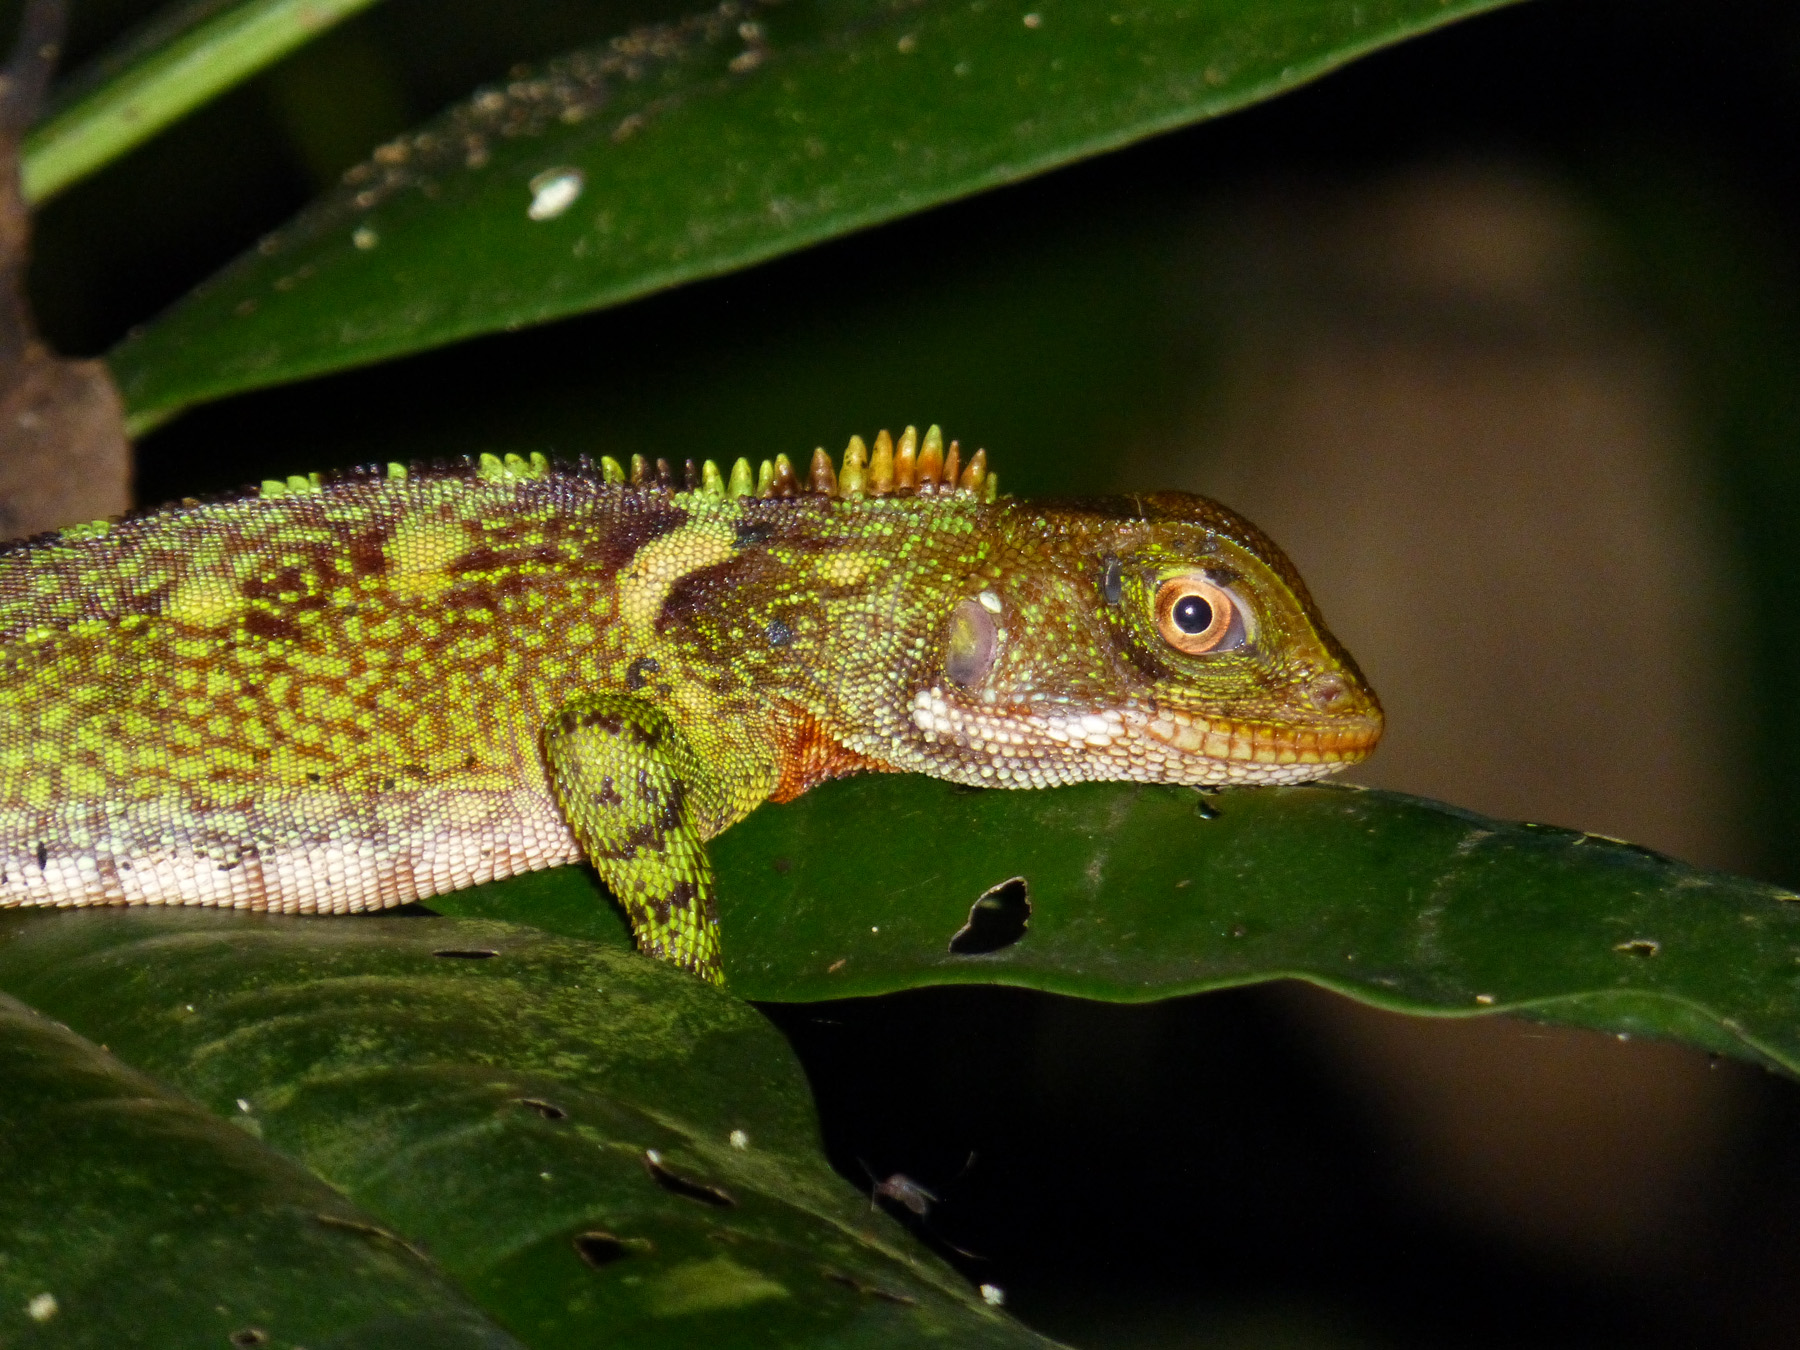 An iguanid. One of the many creatures found during our night time adventure.